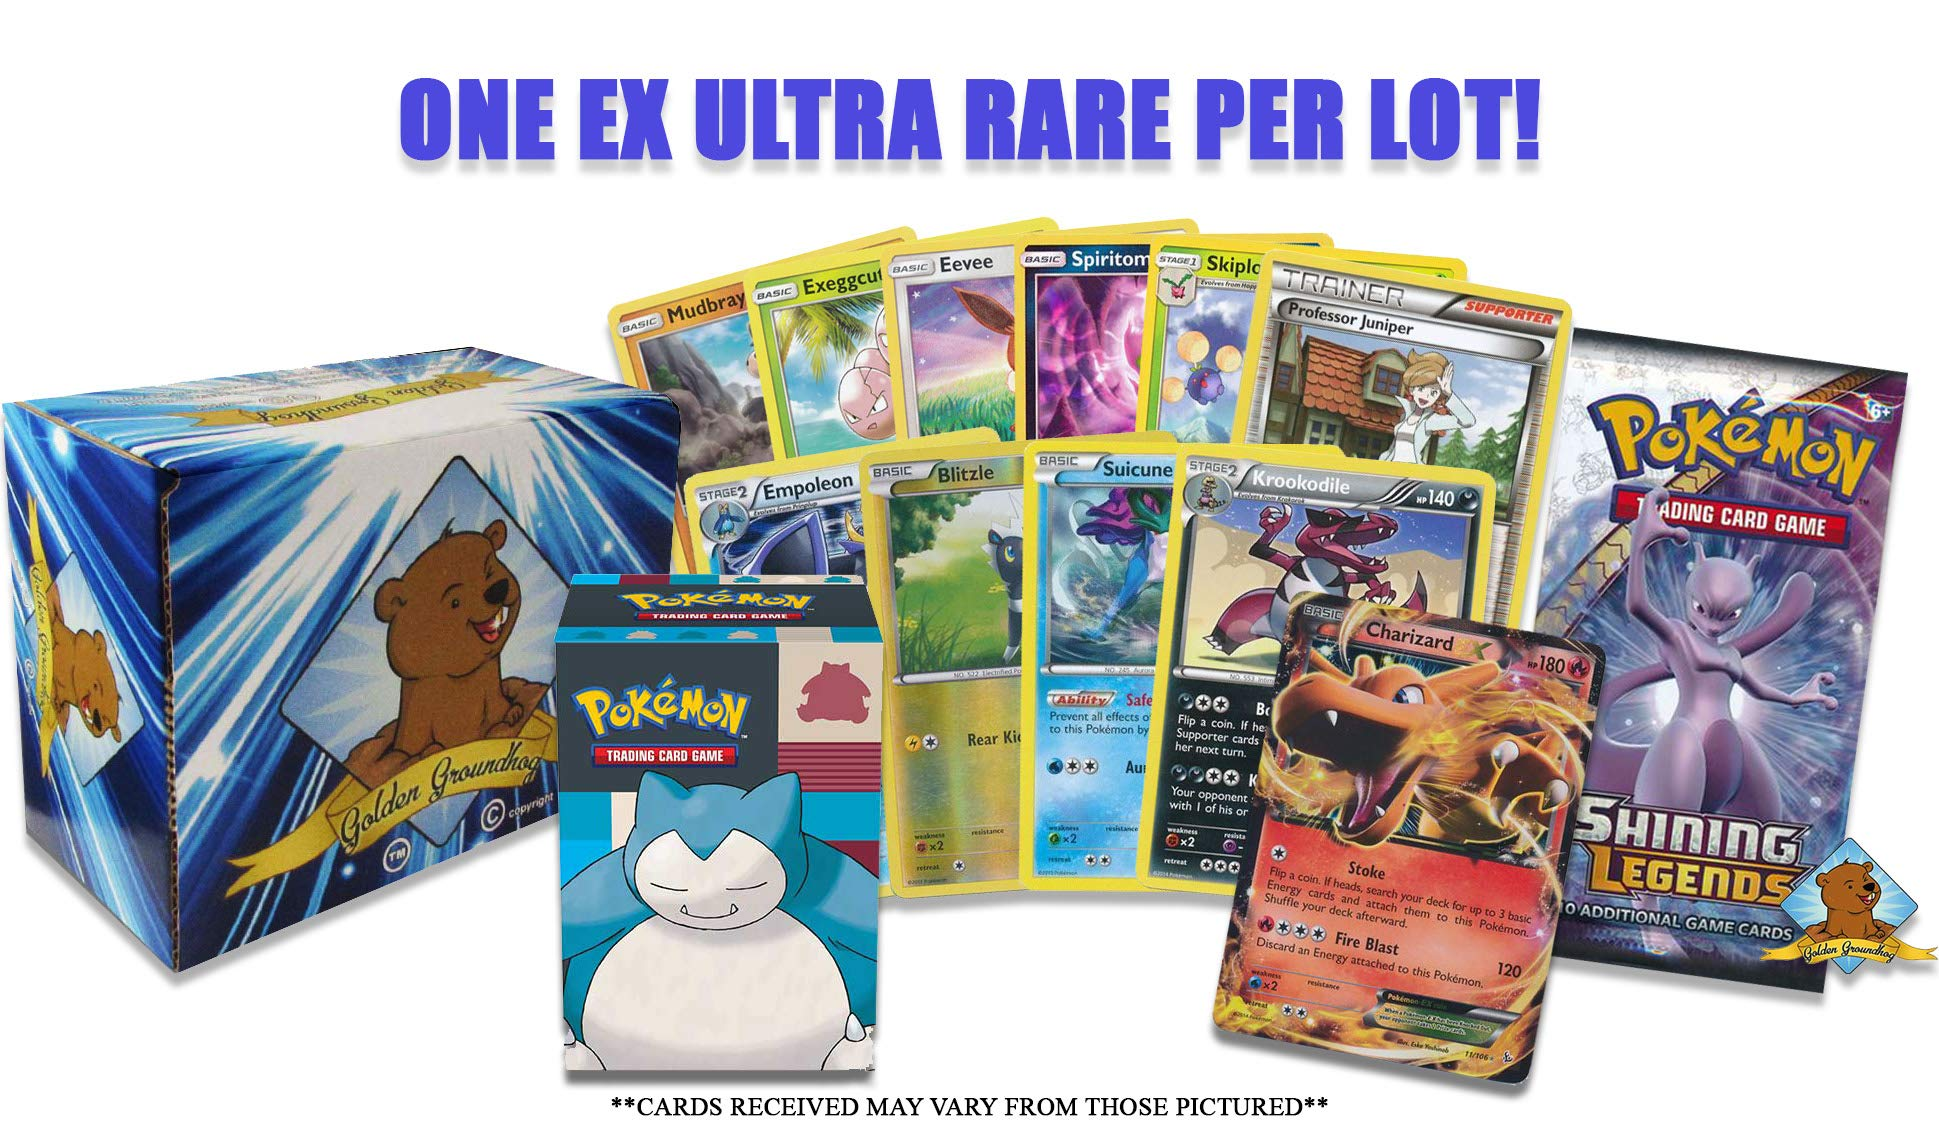 Pokemon EX Card Lot with Booster Pack - 5 Rare Cards - 5 Holo/Reverse Holo Cards - 20 Common/Uncommon Cards! Pokemon Deck Box! Golden Groundhog Storage Box!